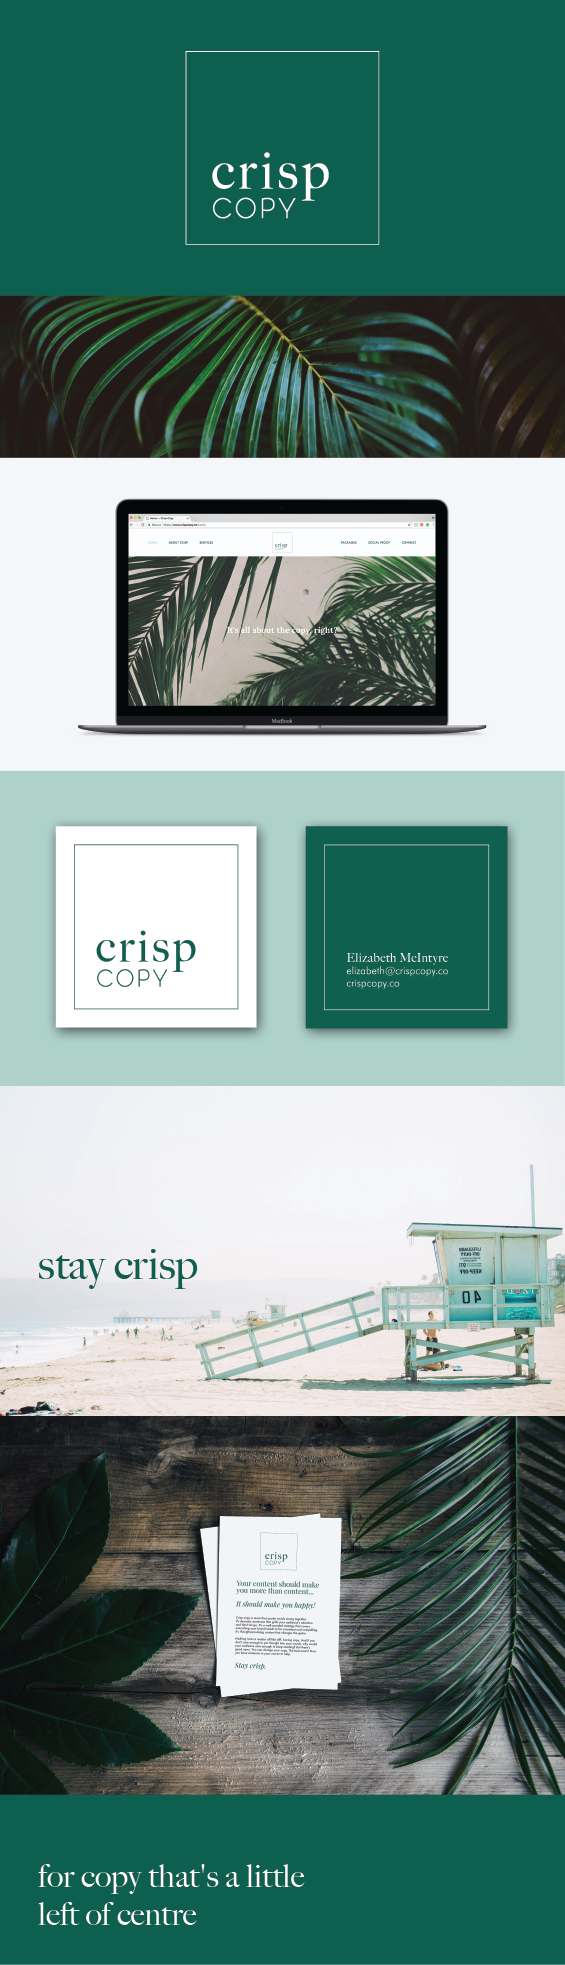 Crisp Copy Brand Design by Amari Creative